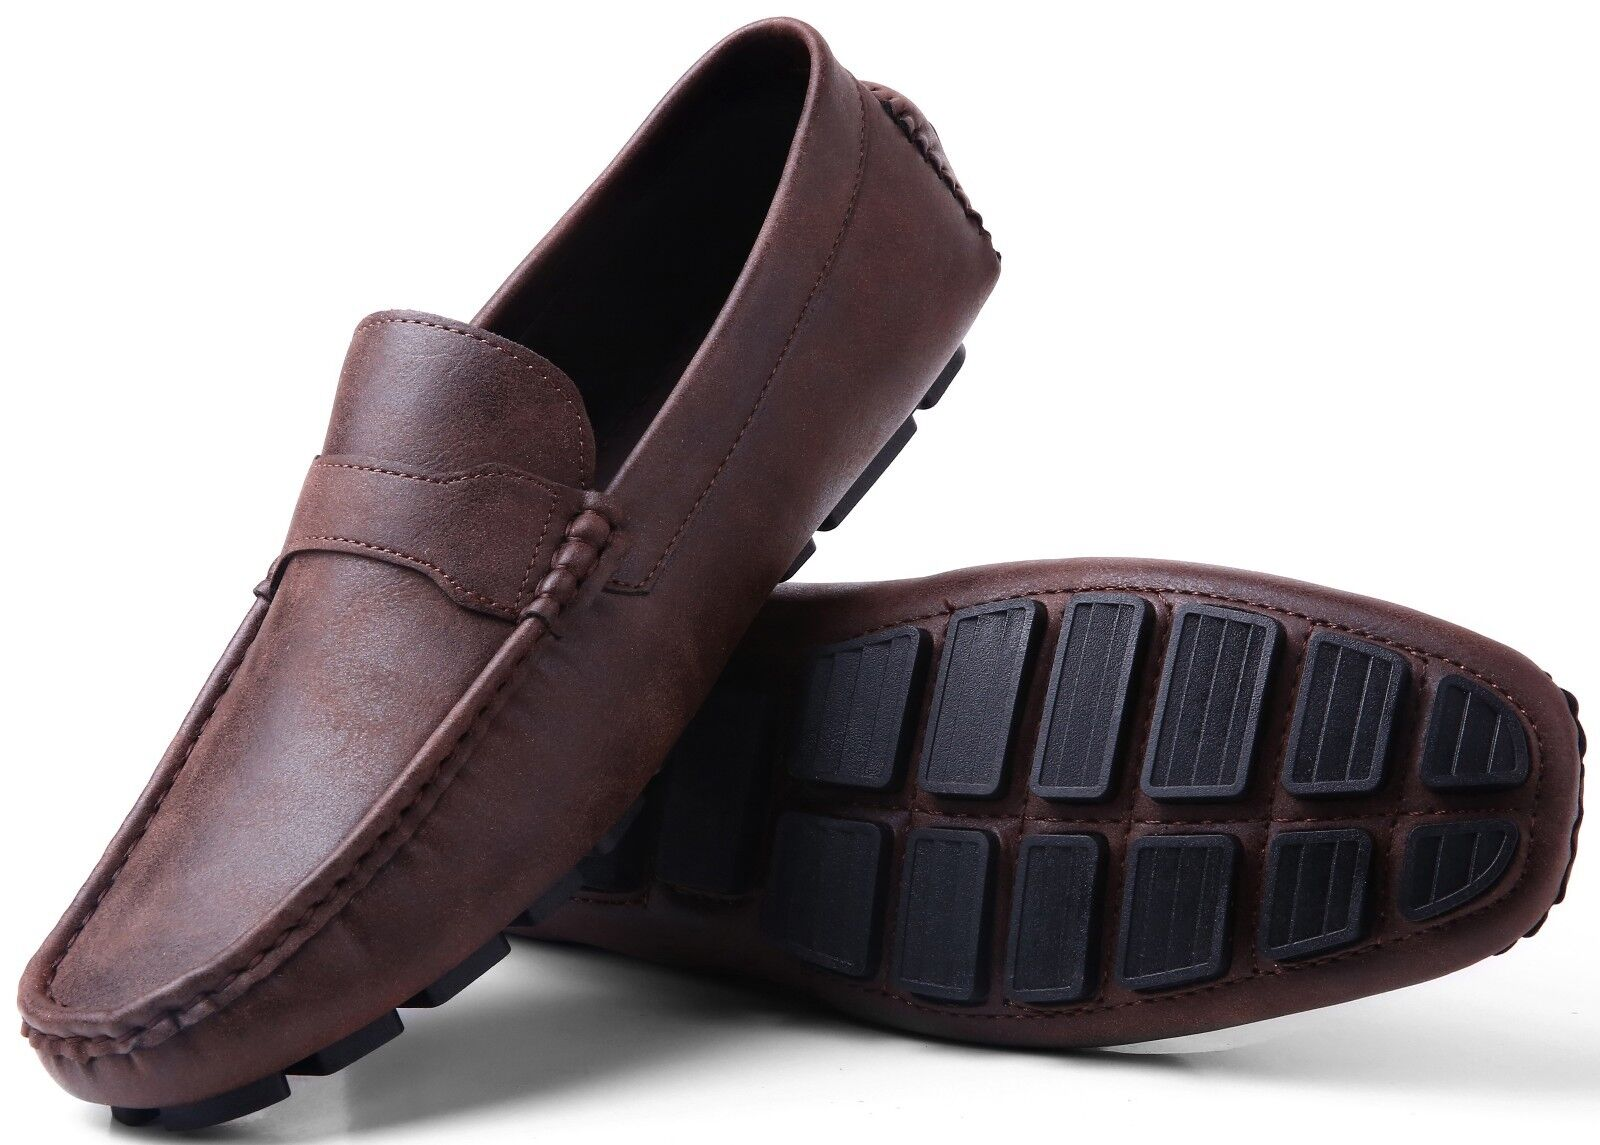 Gallery Seven Driving Shoes for Men - Casual Moccasin Loafer